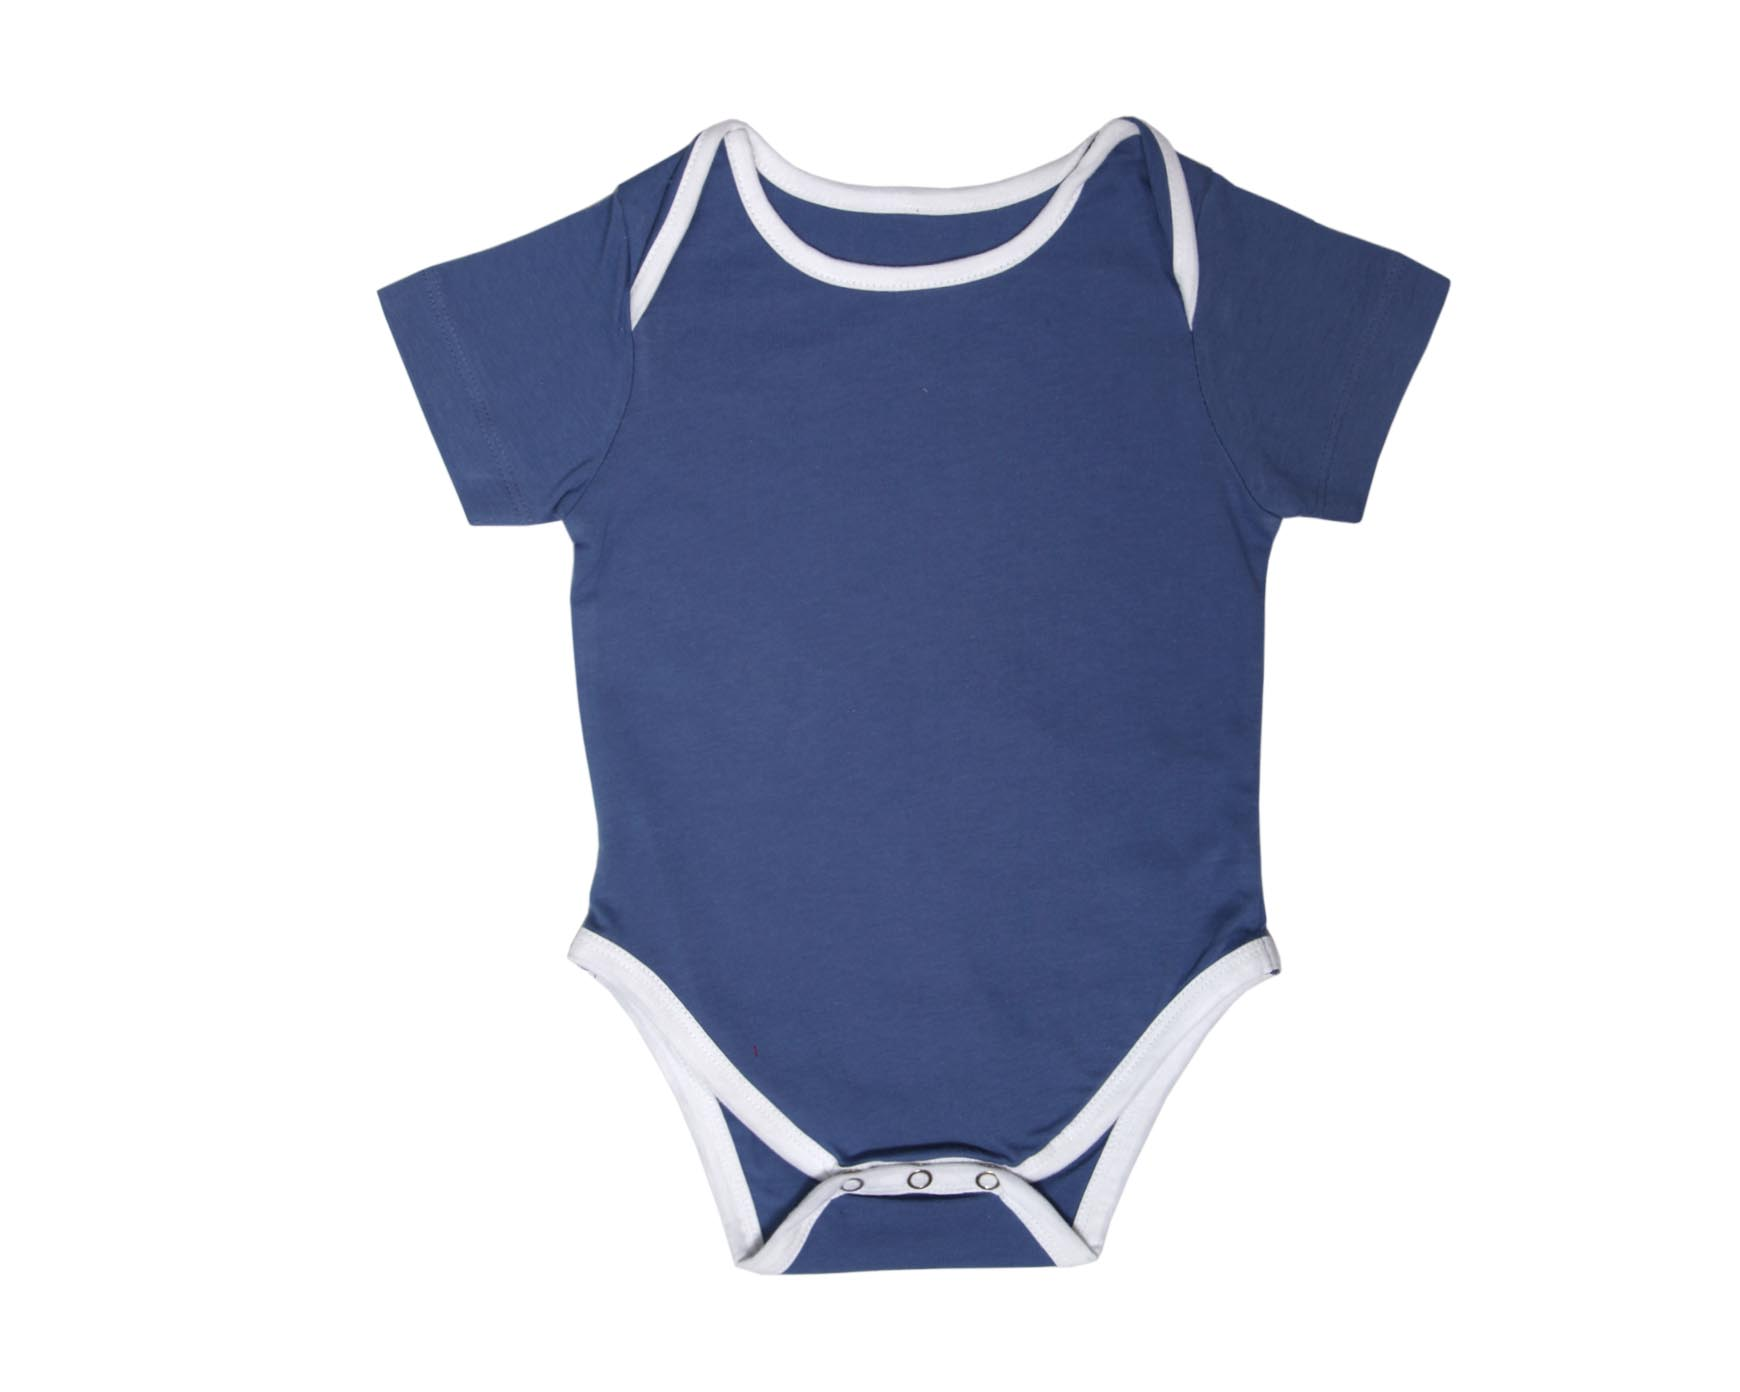 9326ee1eb658 Plain Onesies Baby Rompers for Boys and Girls  Plain Onesies Baby ...